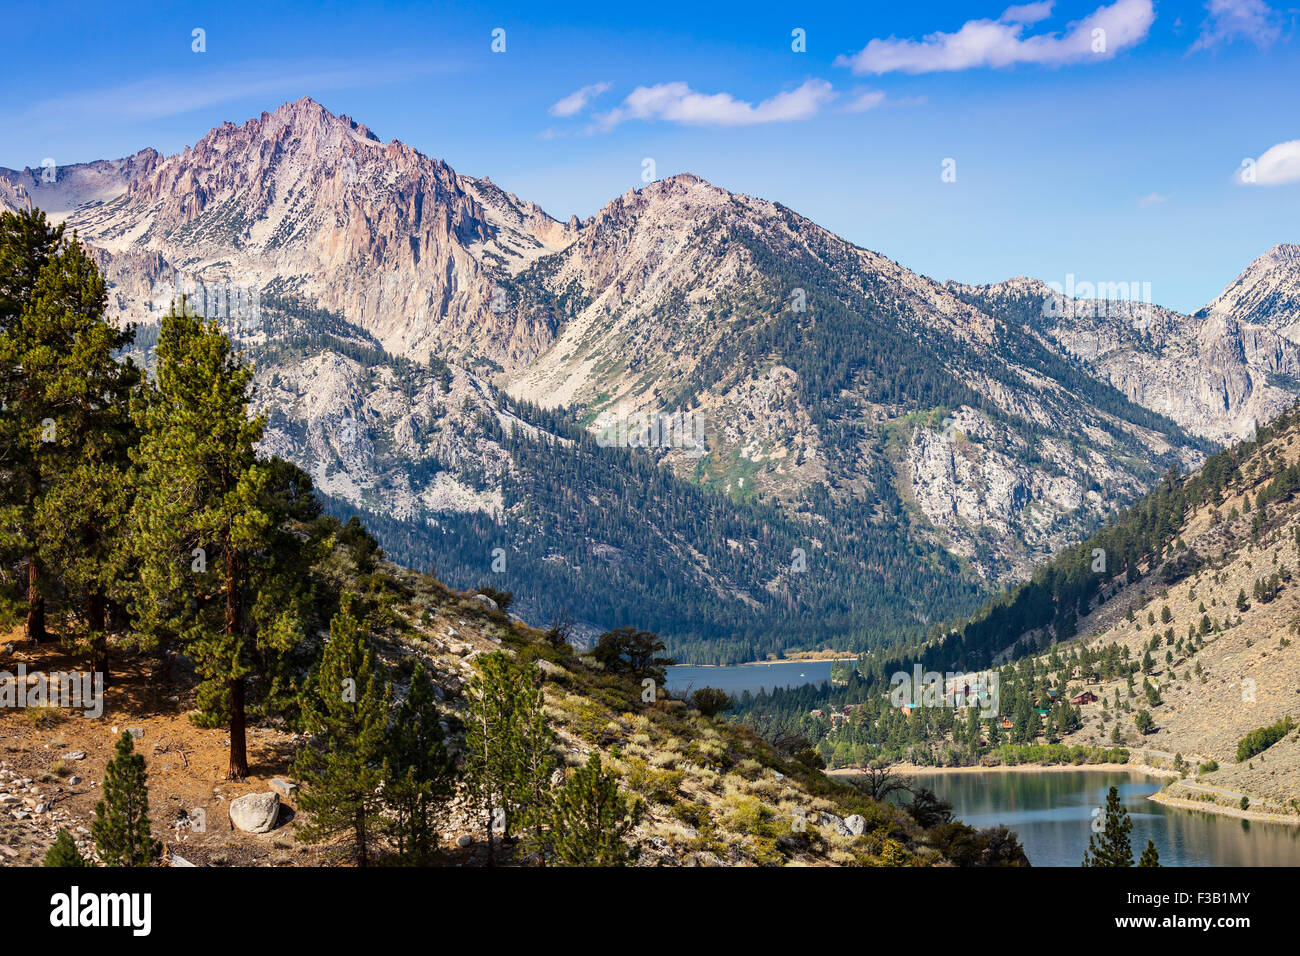 View of Twin Lakes, Bridgeport, California from Summers Meadows trail Stock Photo